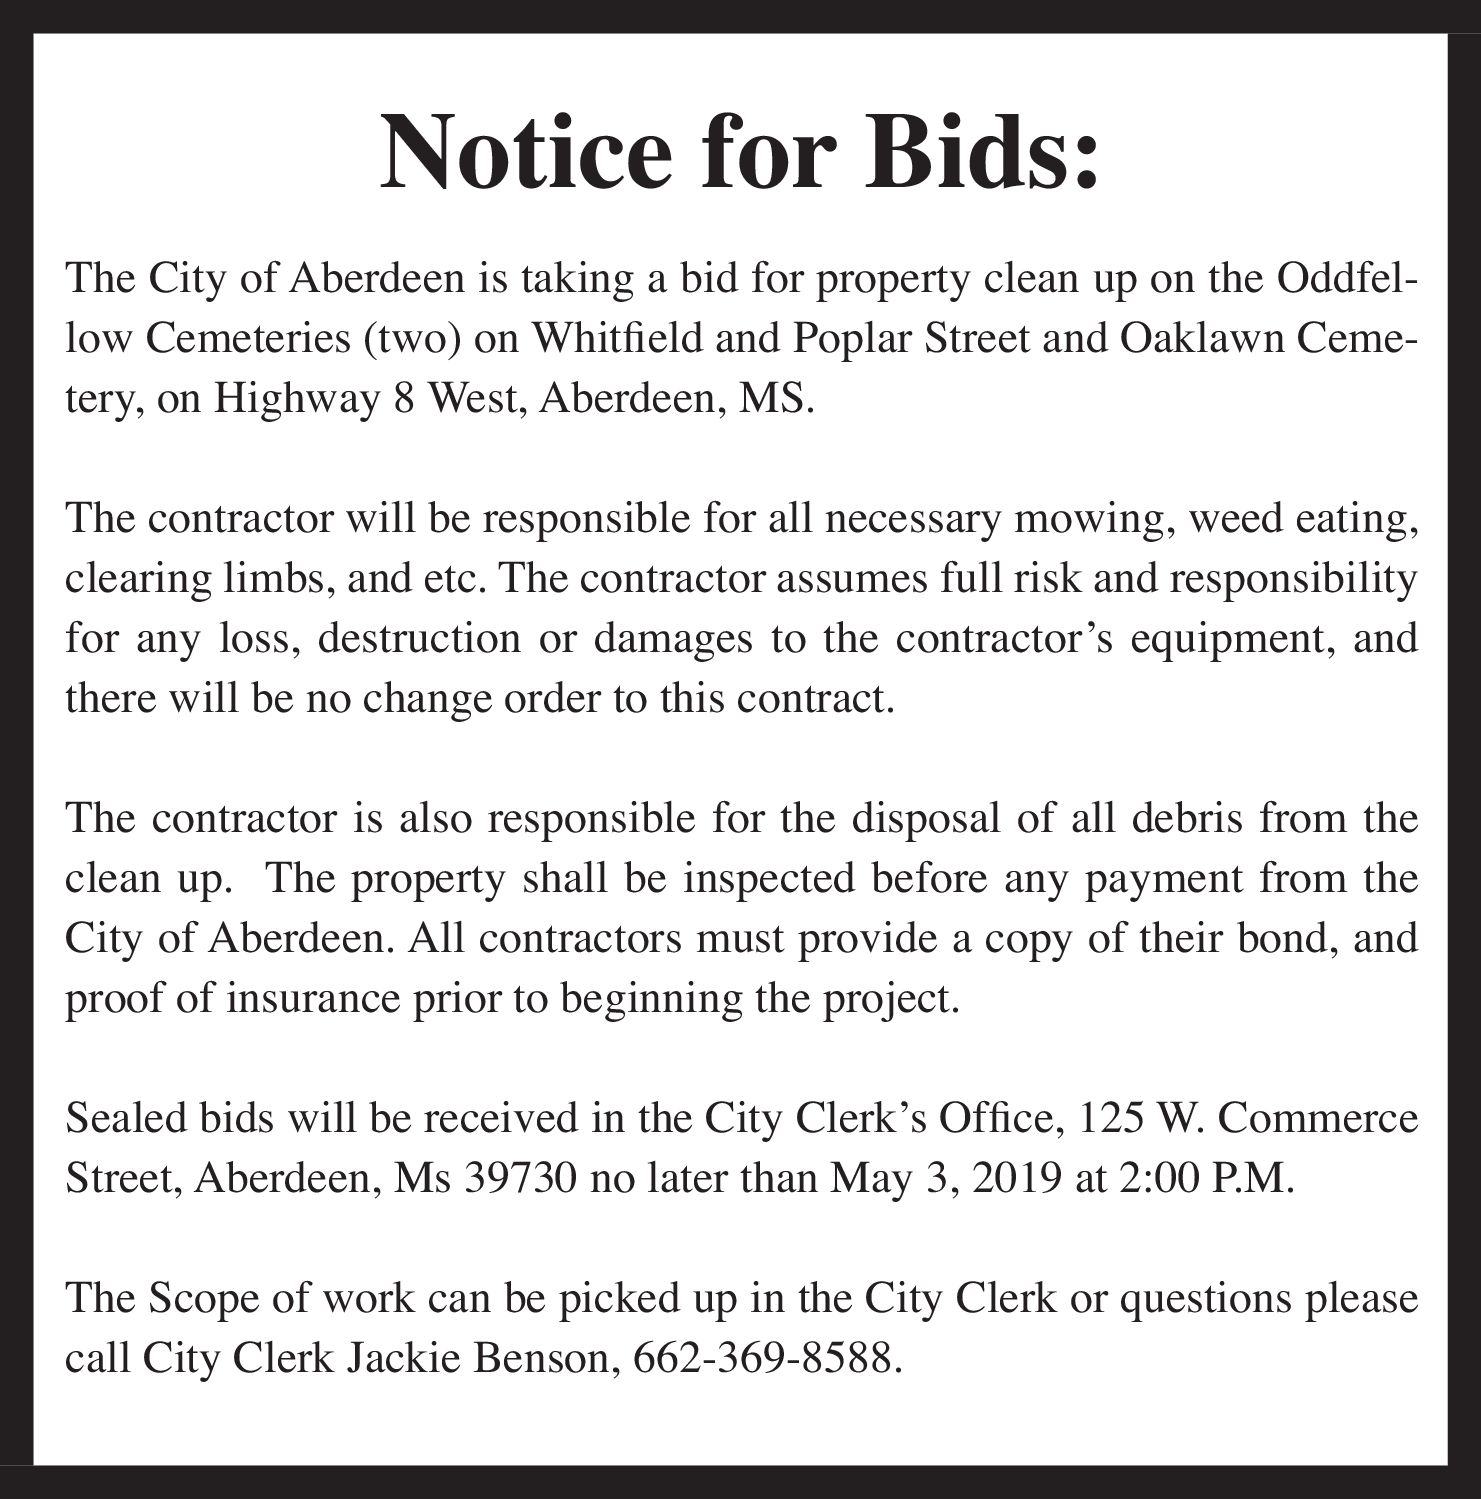 Public Notice for Bids in Aberdeen, MS, Places - City of